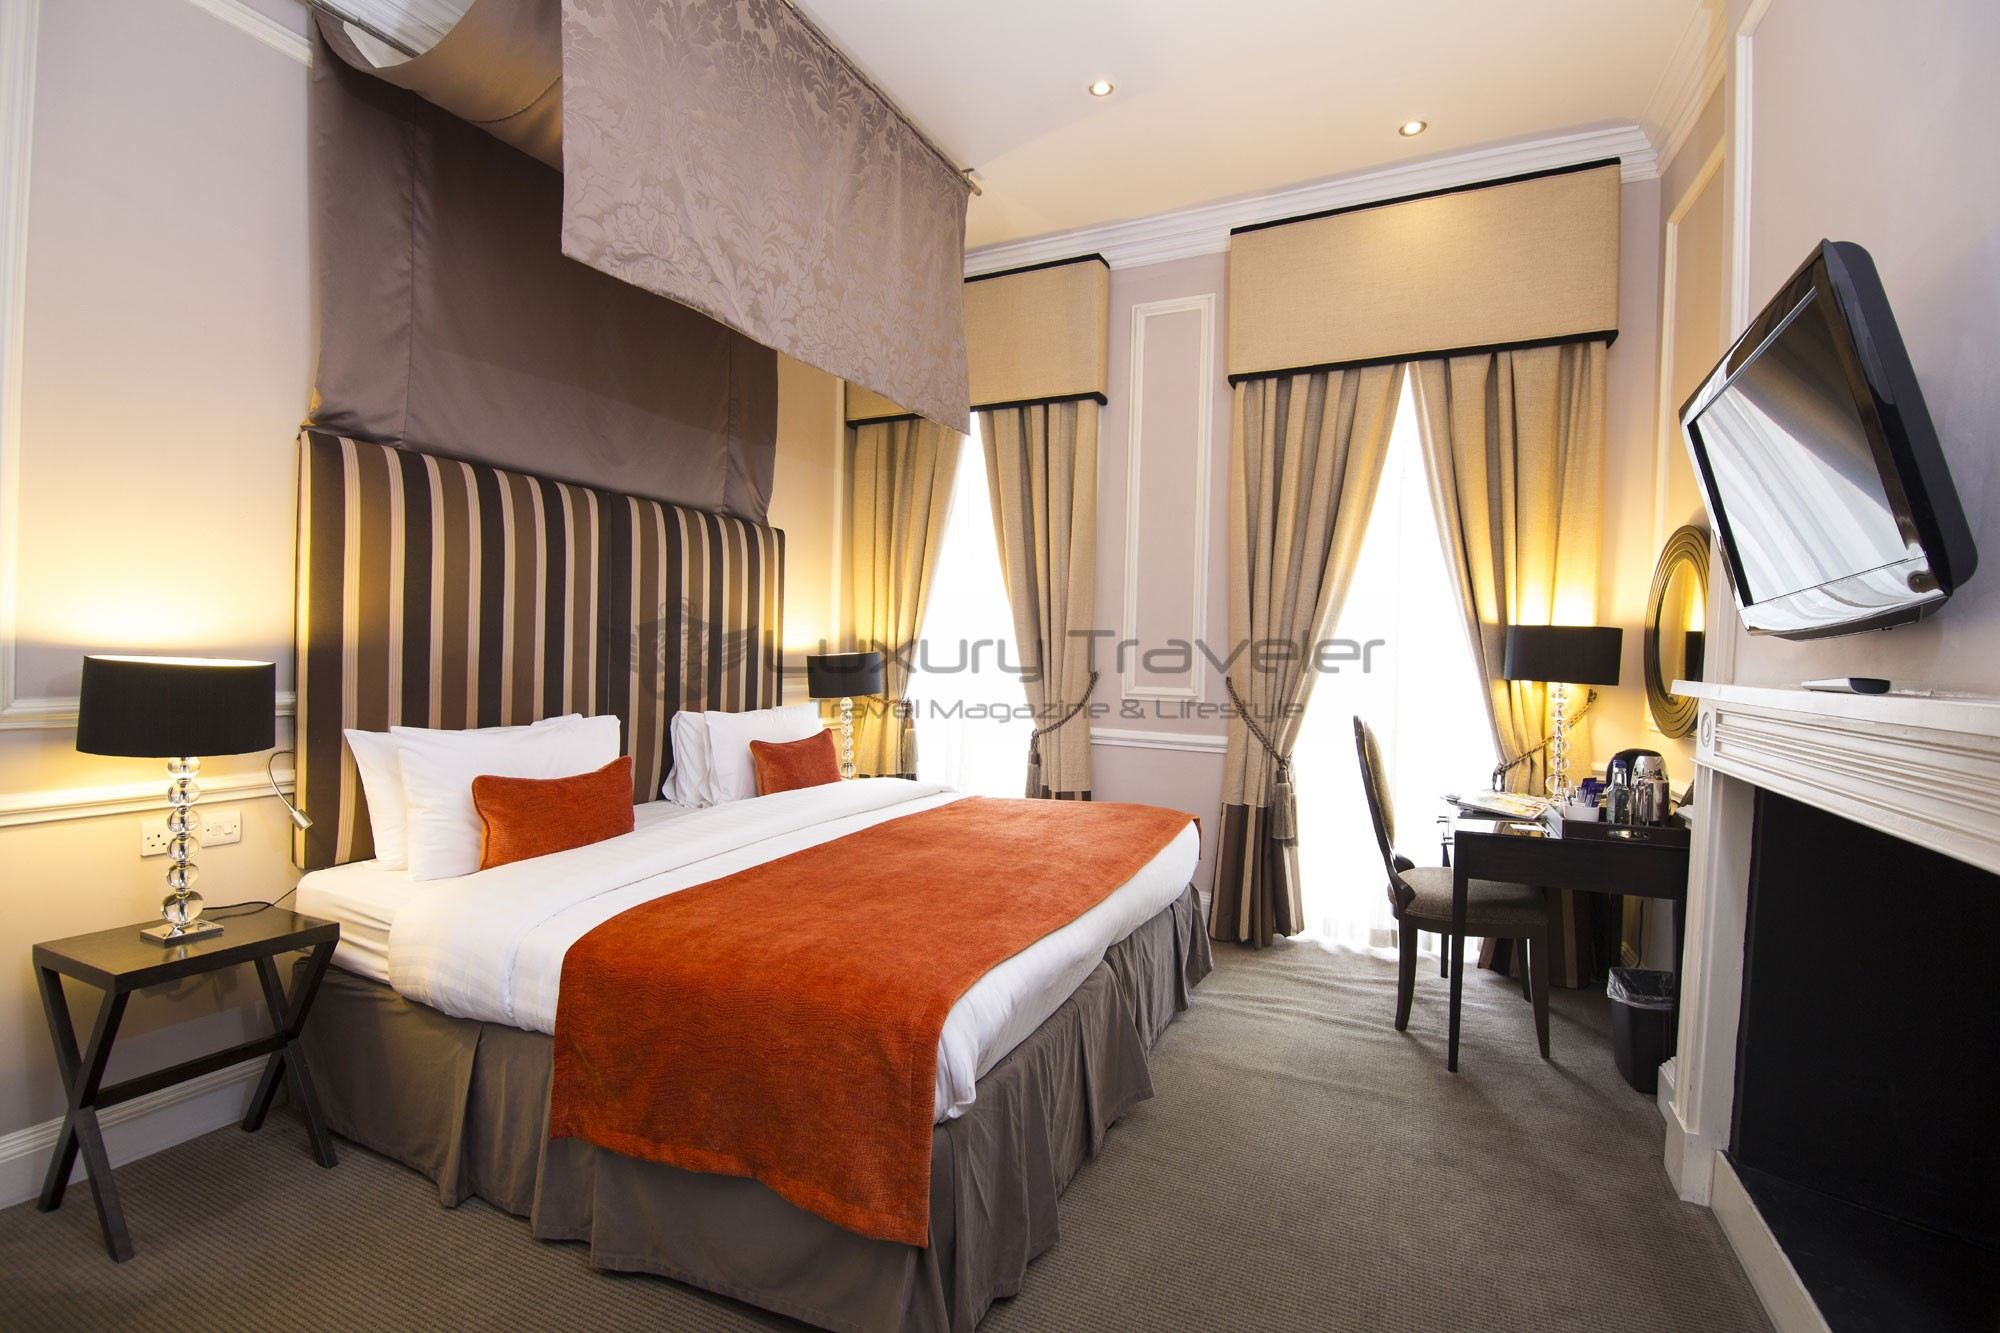 Montagu_Place_Hotel_London_Swanky_Room